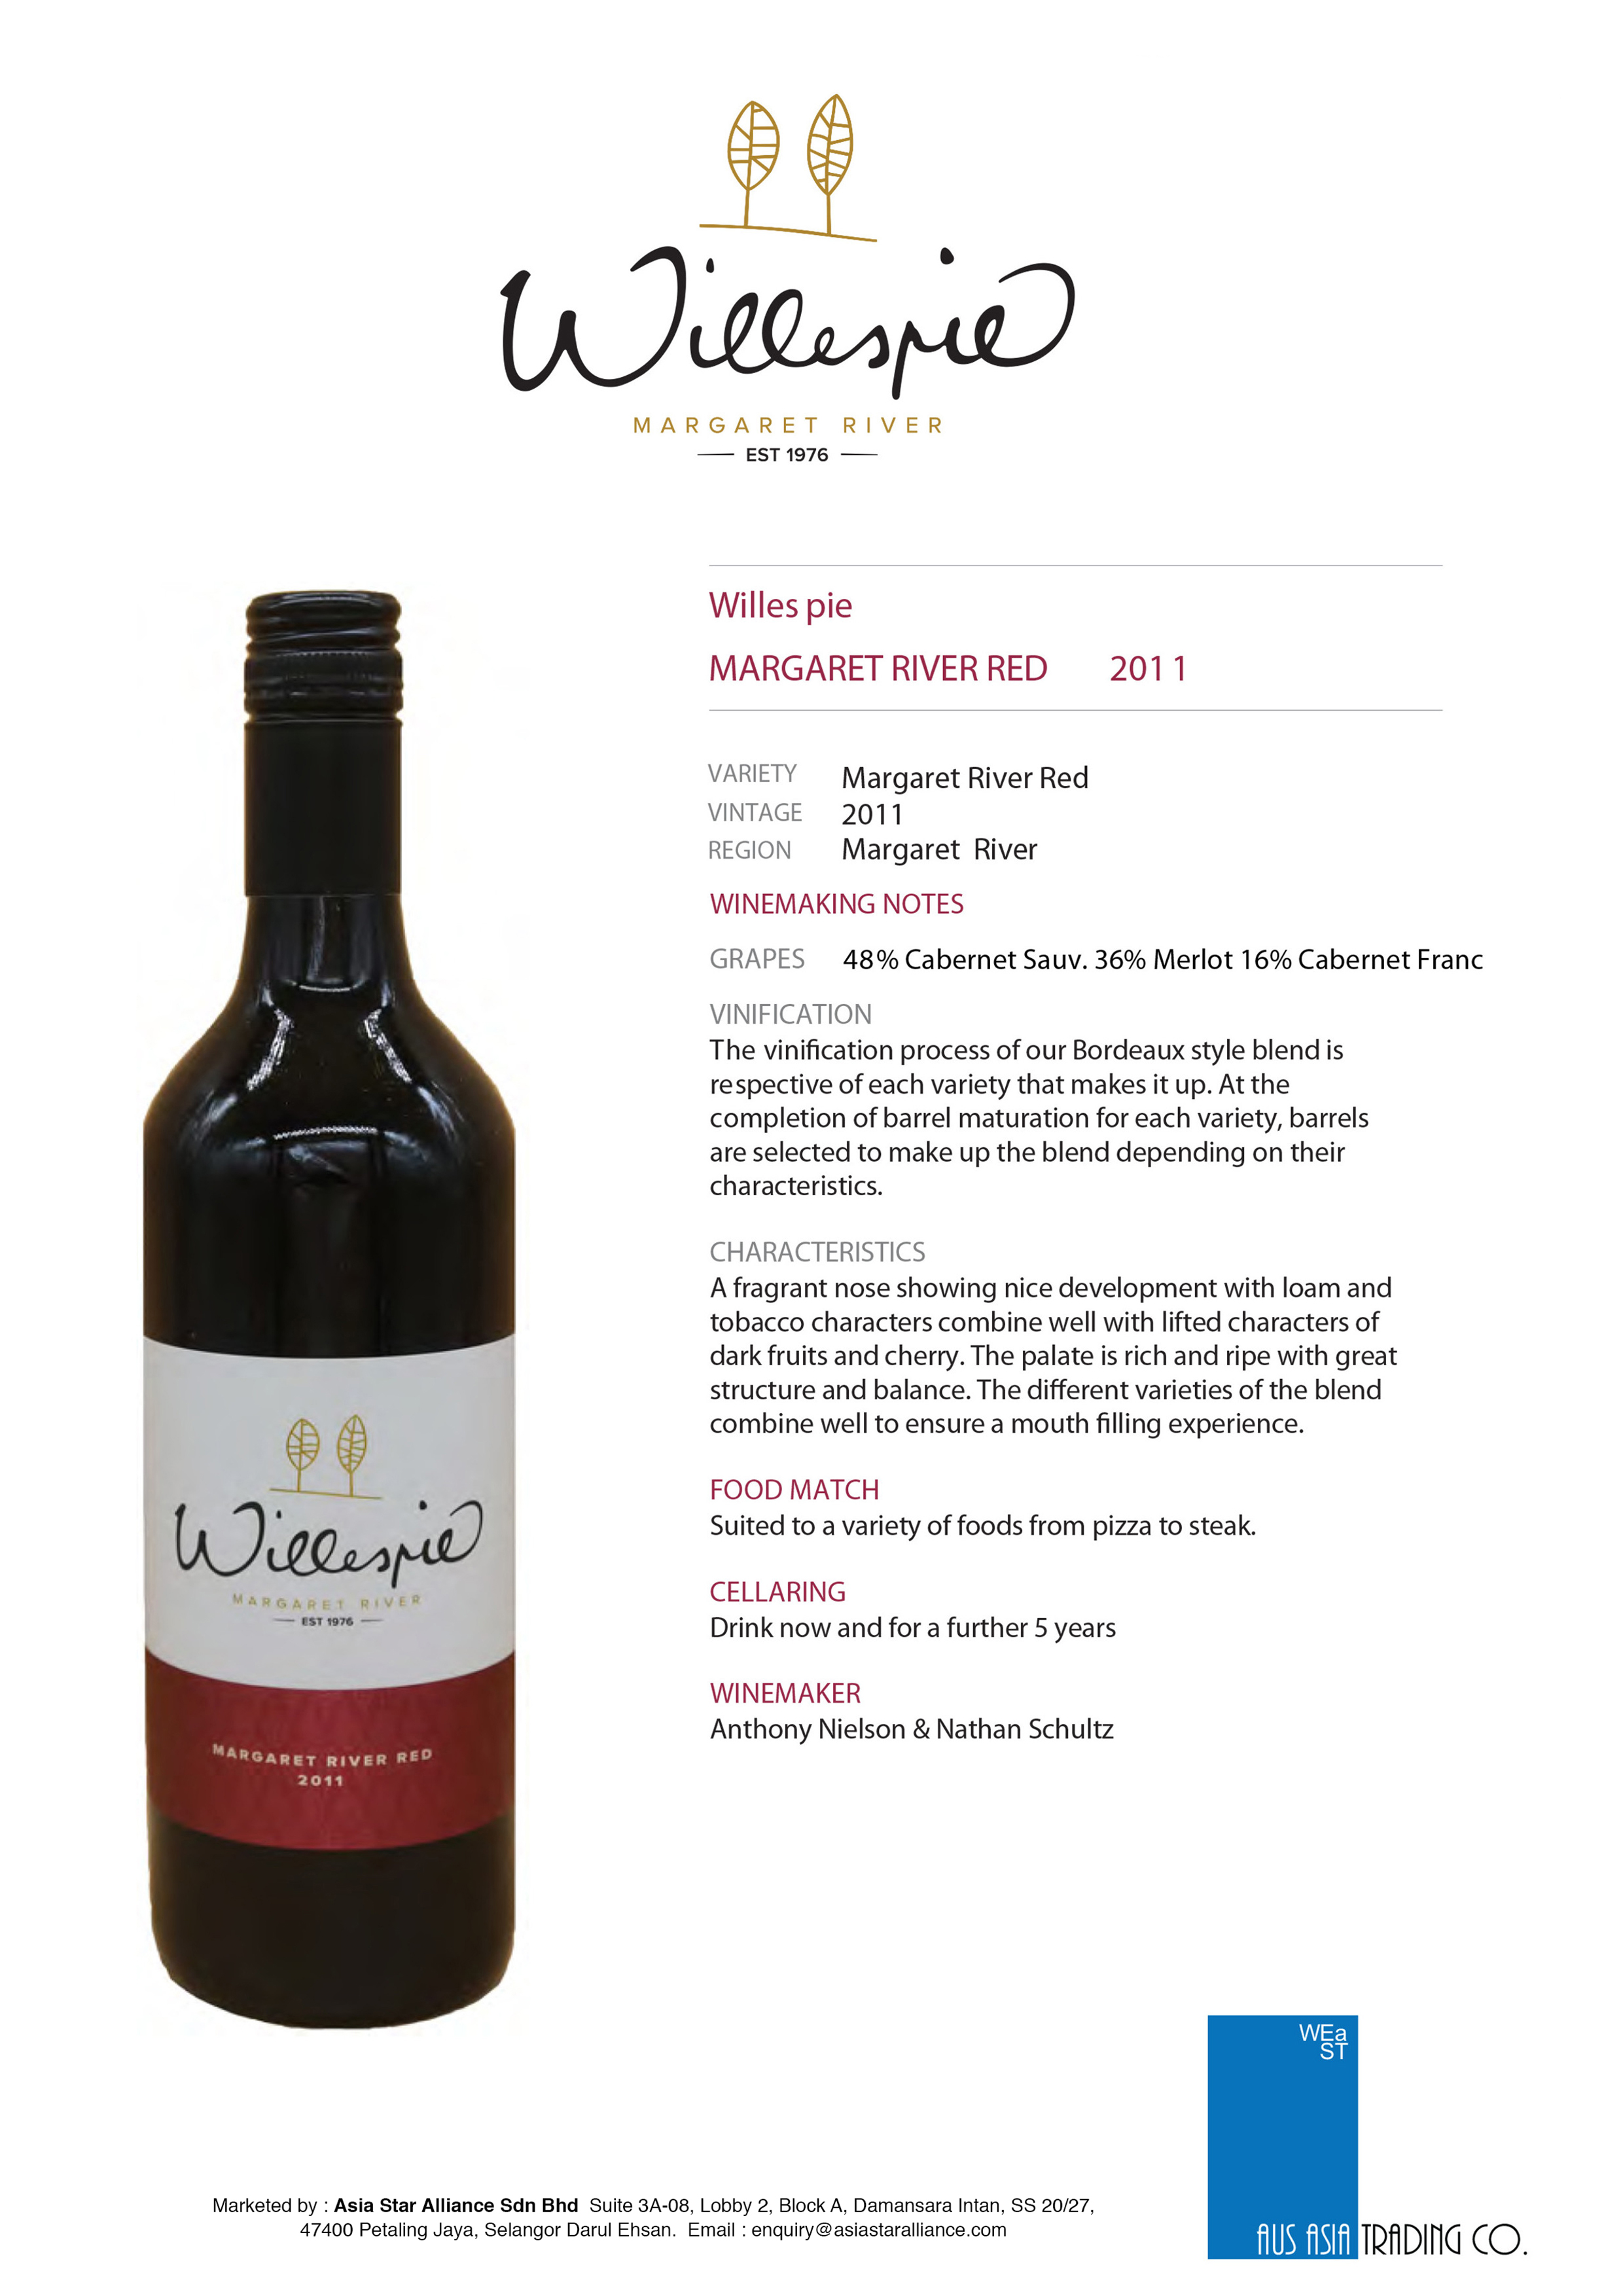 Willespie Magaret River Red Tasting Note